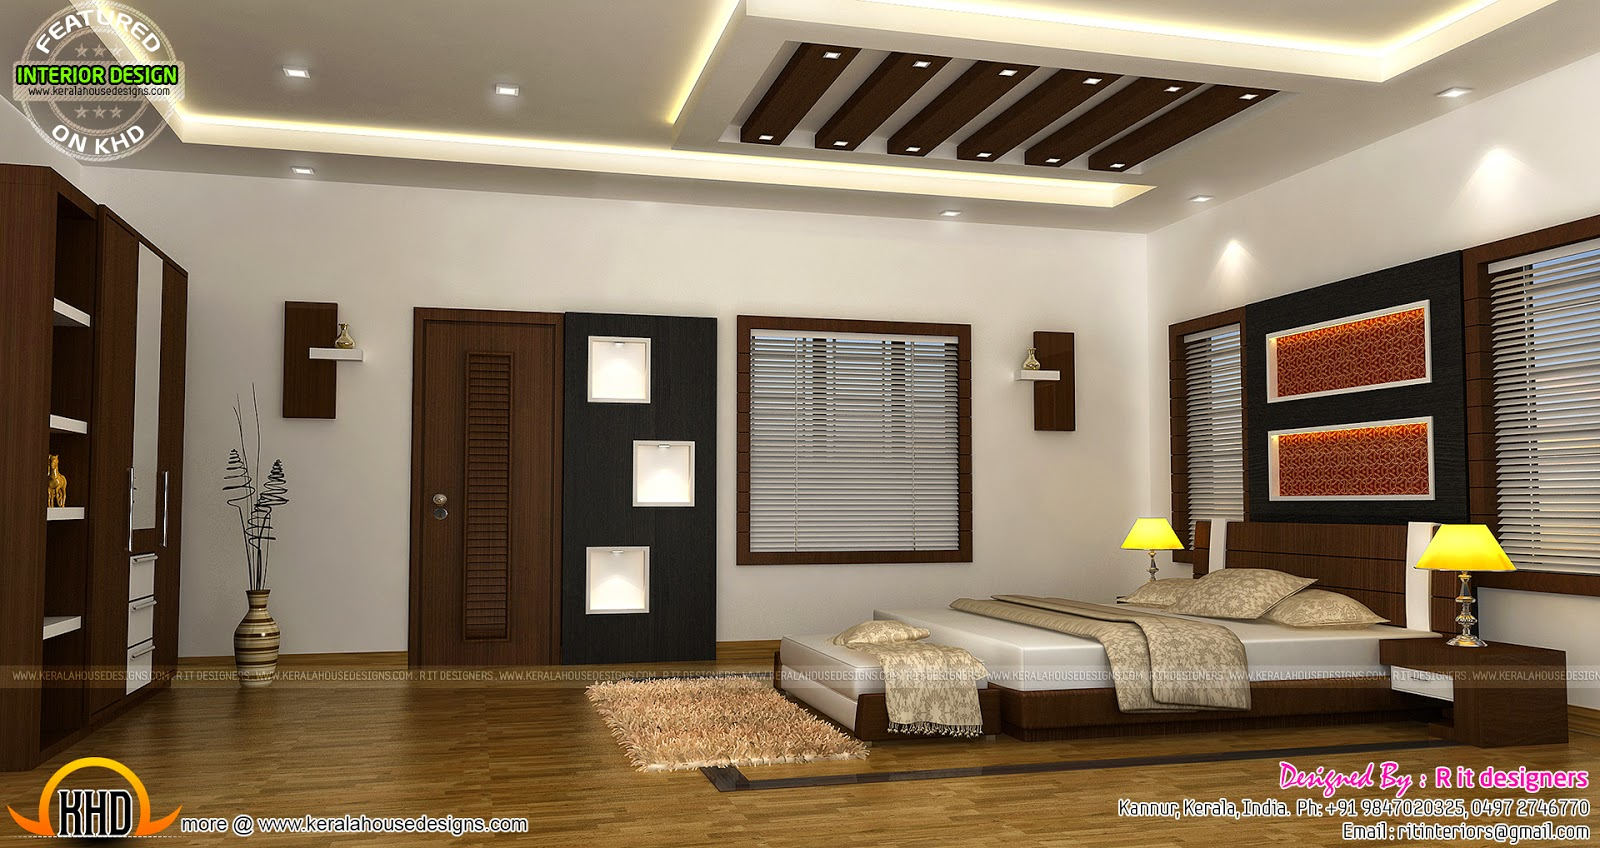 Bedroom interior design with cost kerala home design and for House designs interior photos